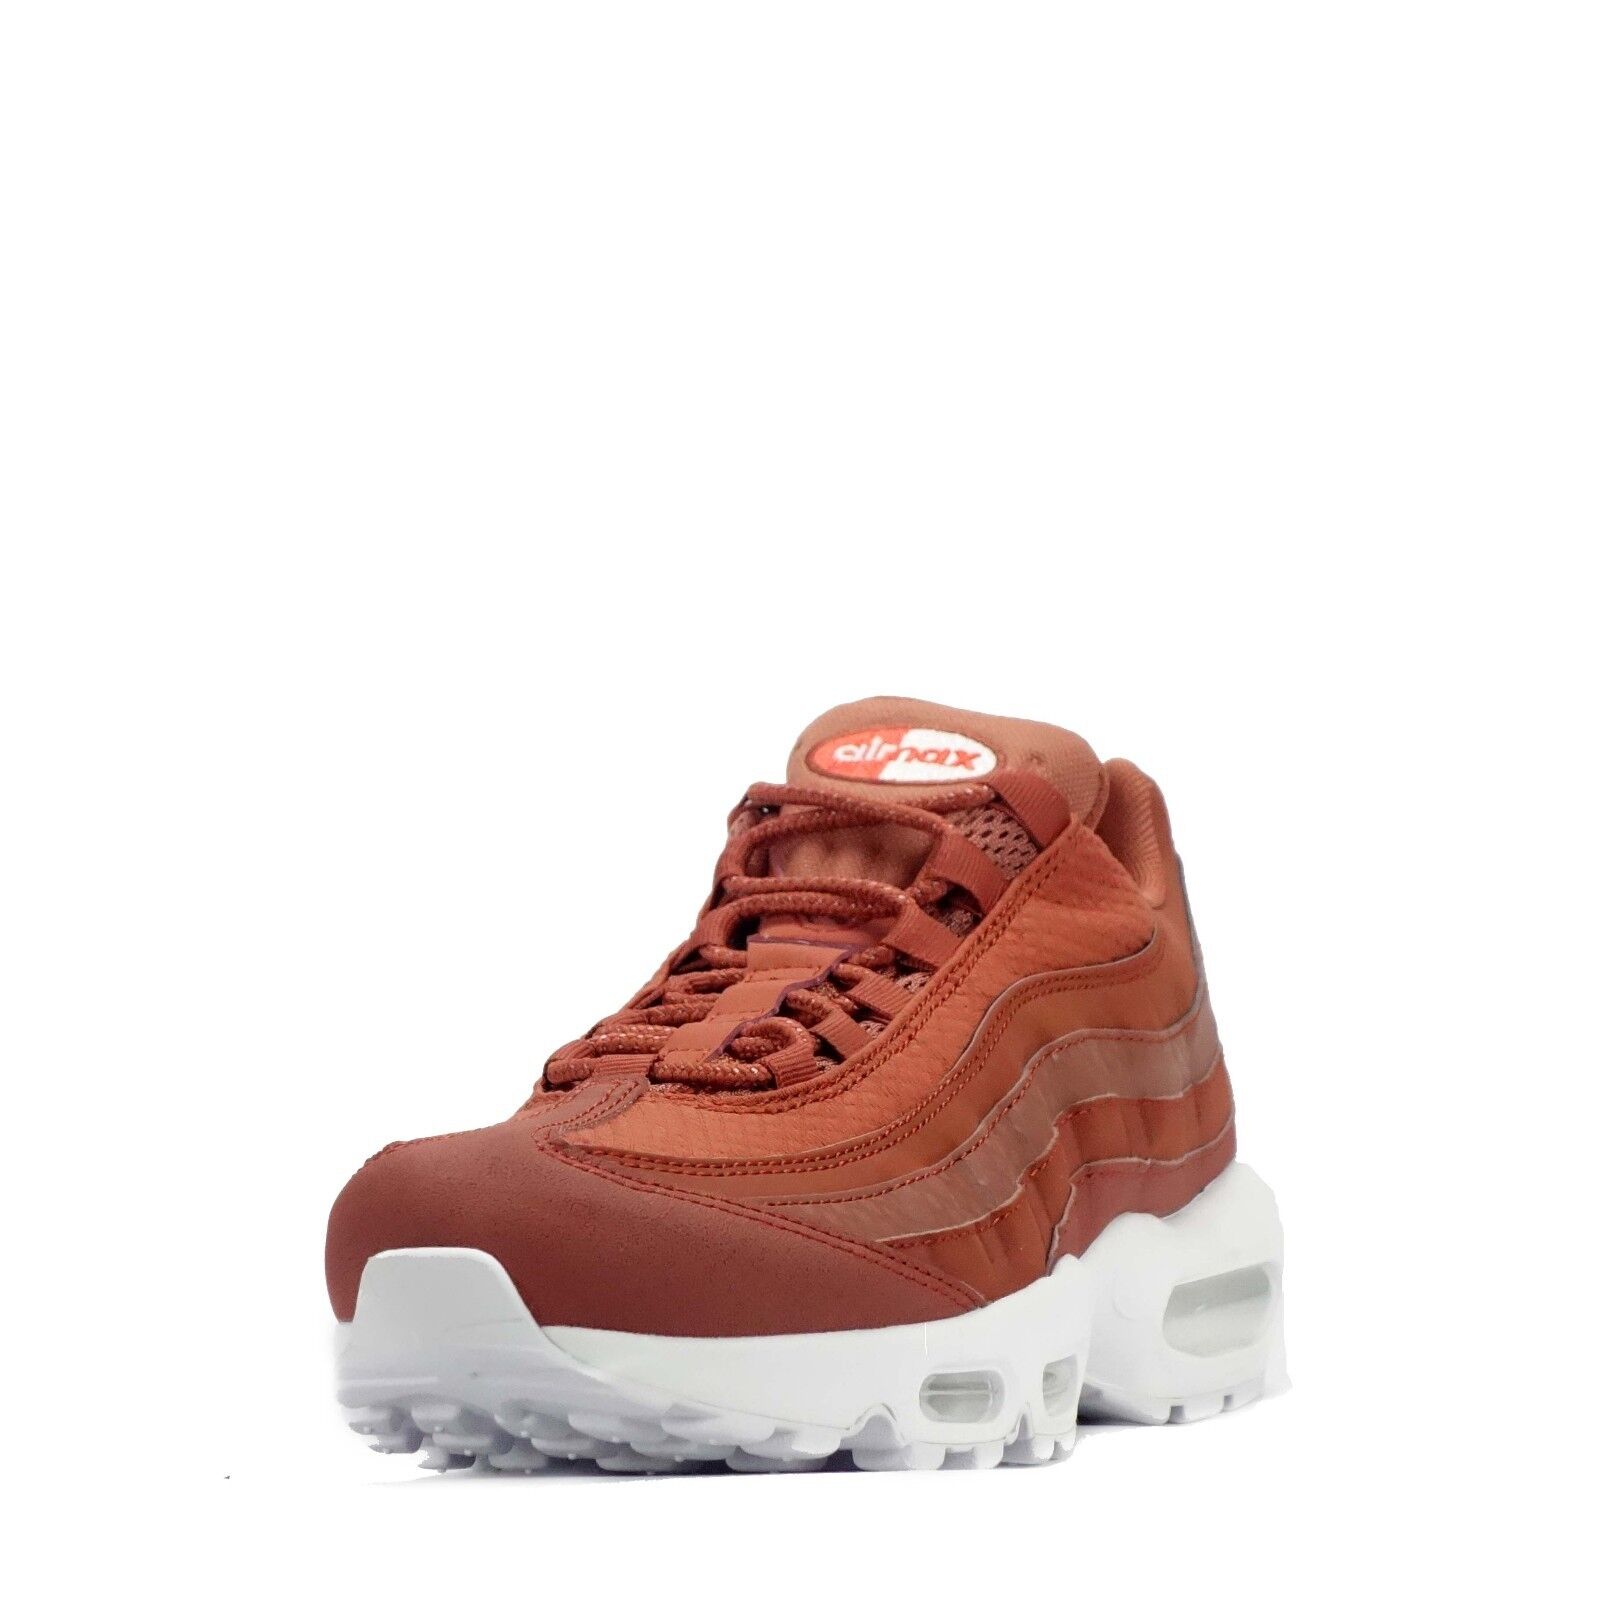 Nike Air Max 95 Premium SE Men's Trainers Dusty Peach/WEISS